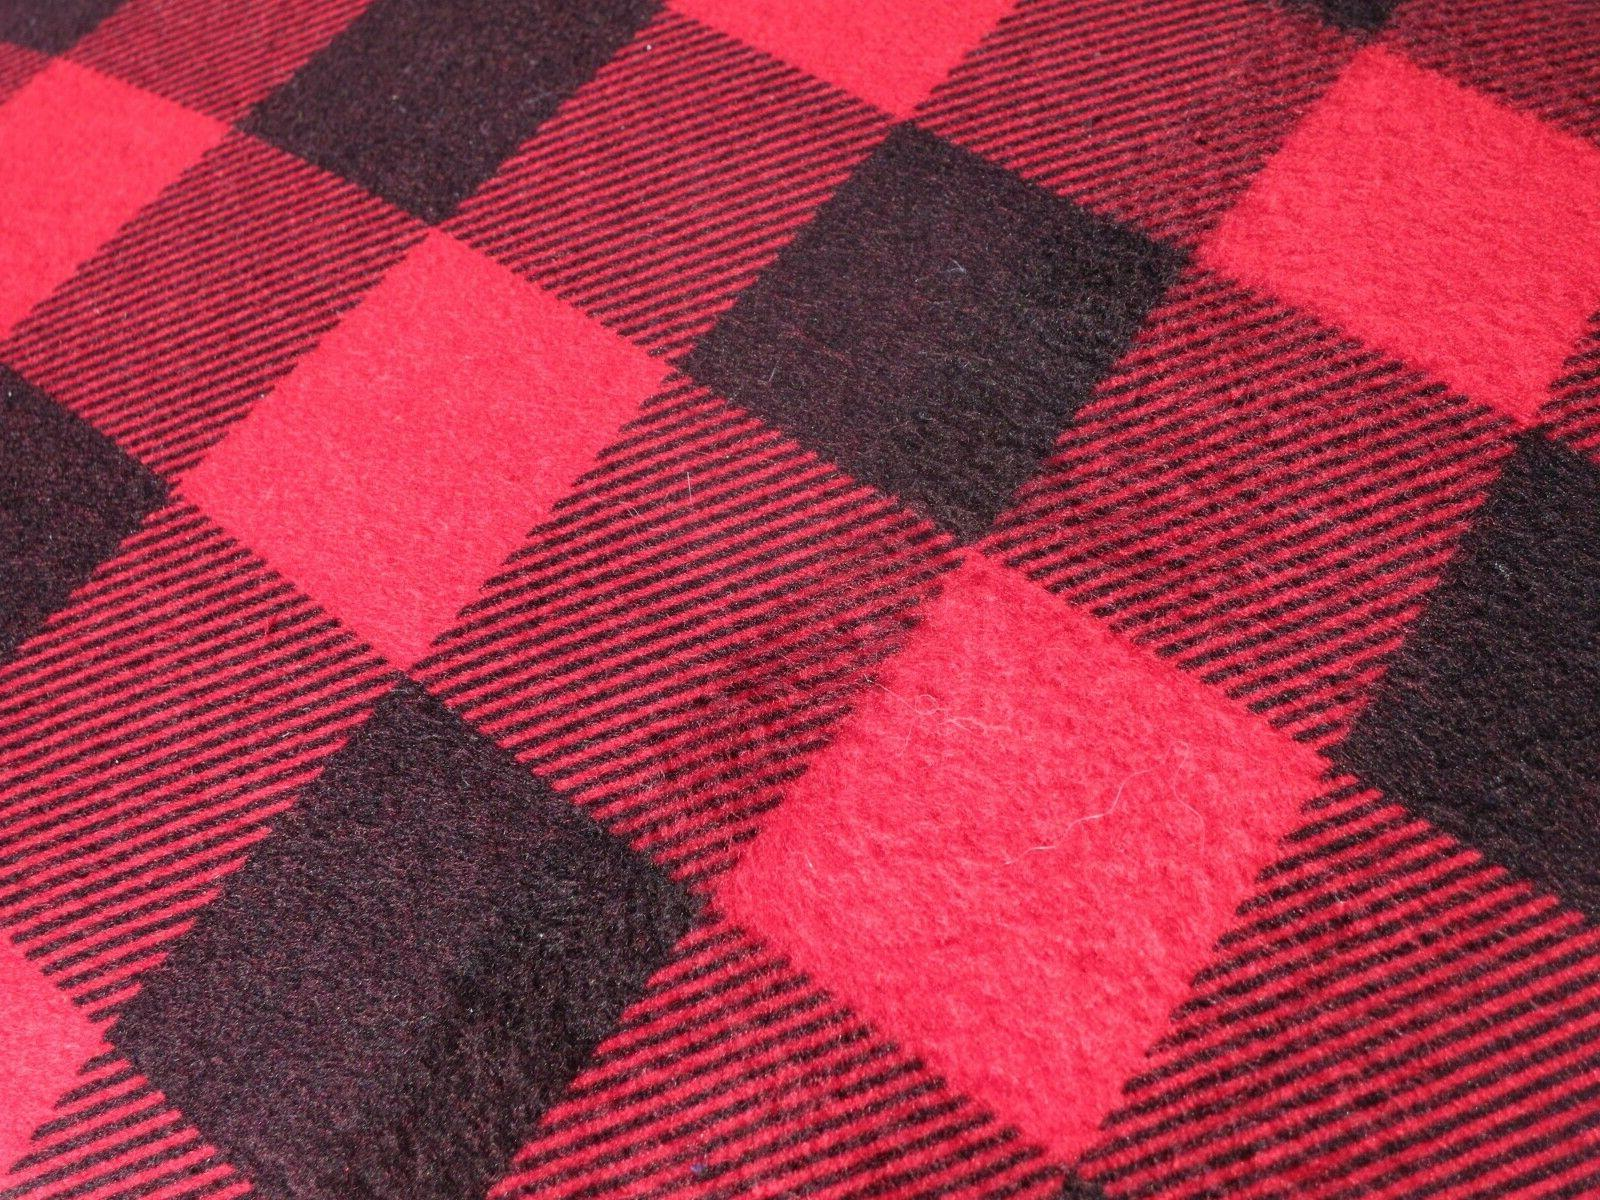 Nice! Queen Plaid/Buffalo Check/Red &